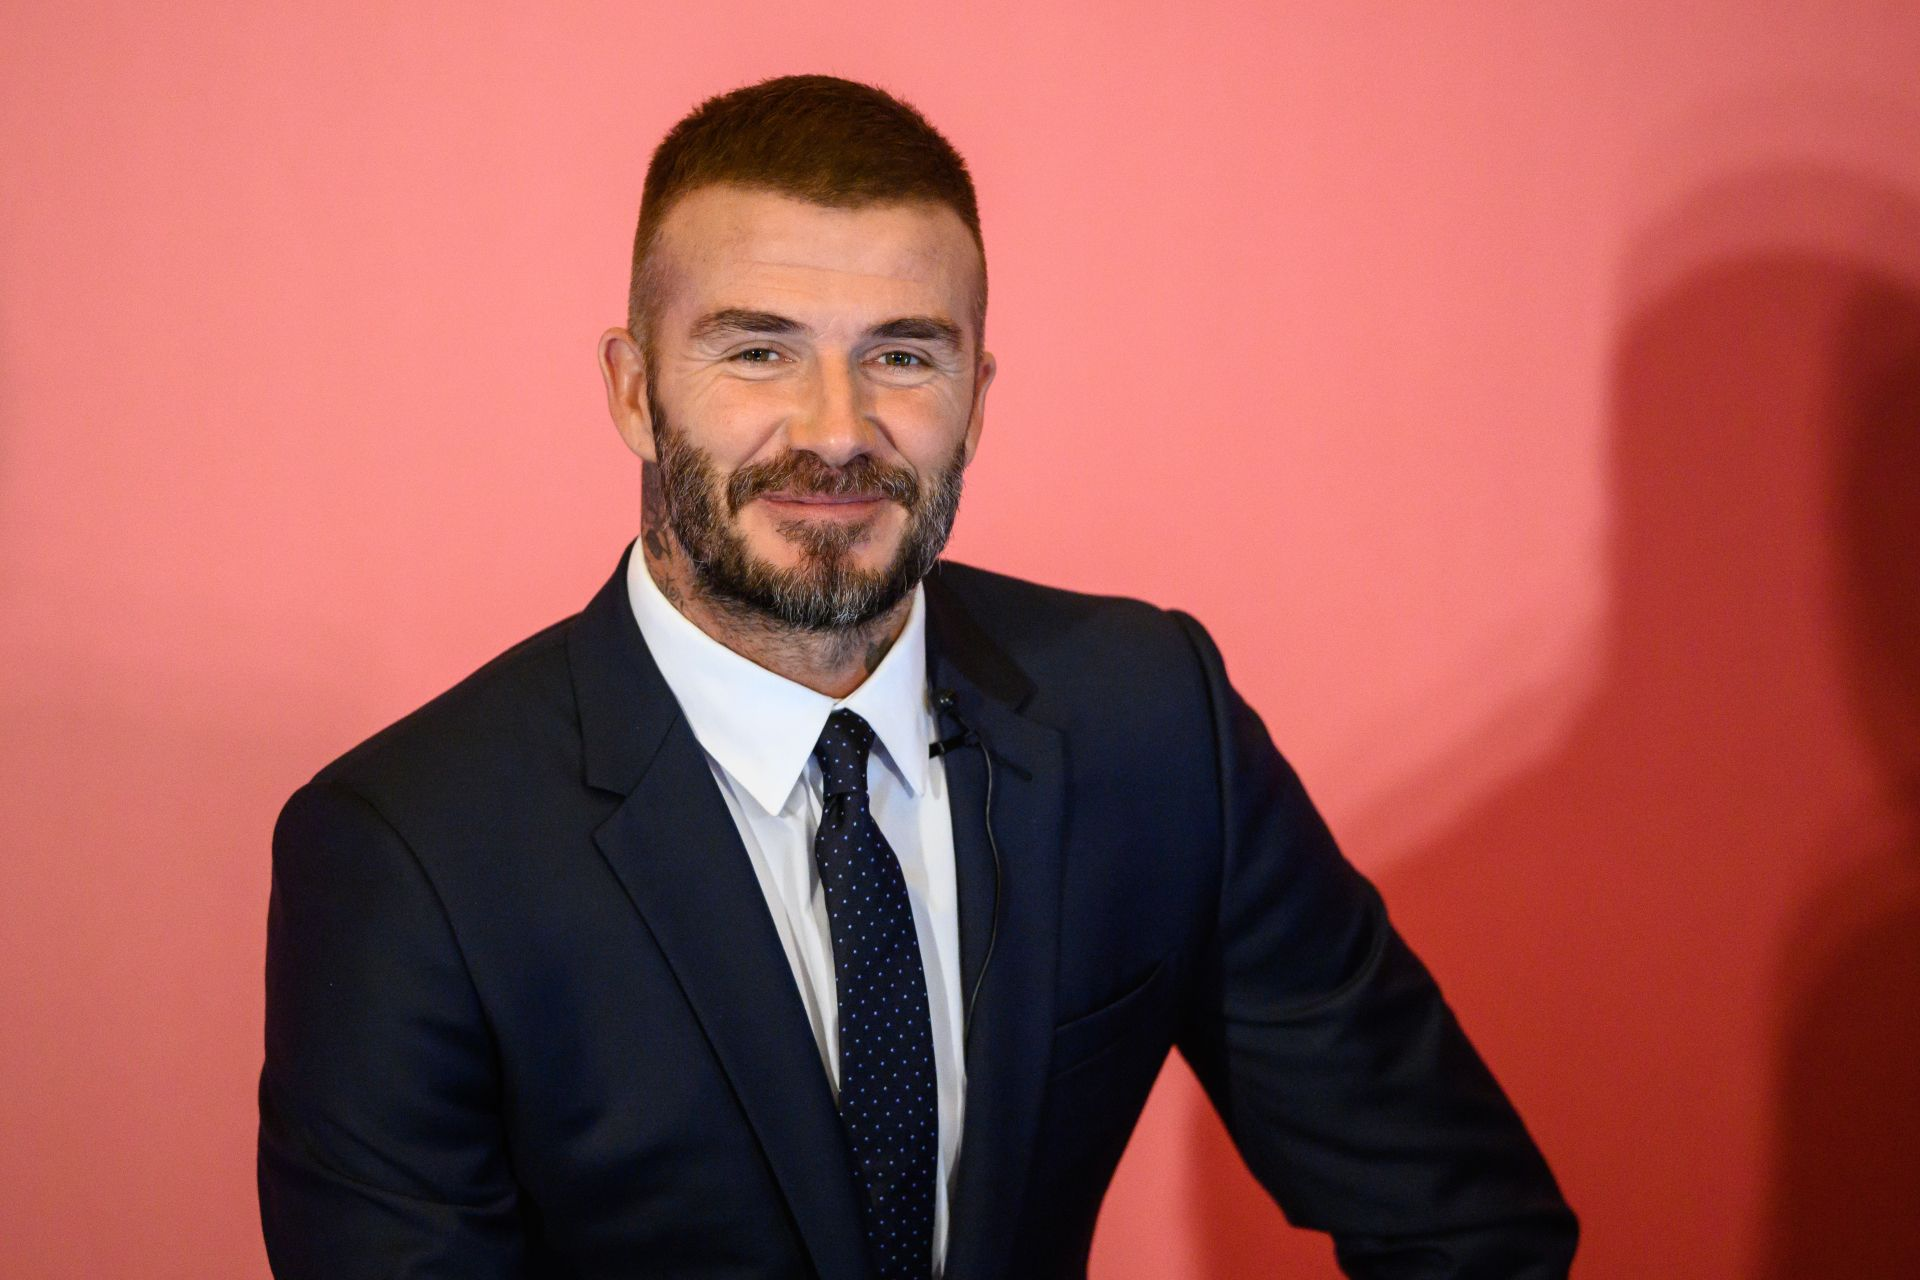 Former England footballer David Beckham speaks during a promotional event where he appeared as the global brand ambassador for insurance company AIA in Hong Kong on September 24, 2018. (Photo by Anthony WALLACE / AFP)